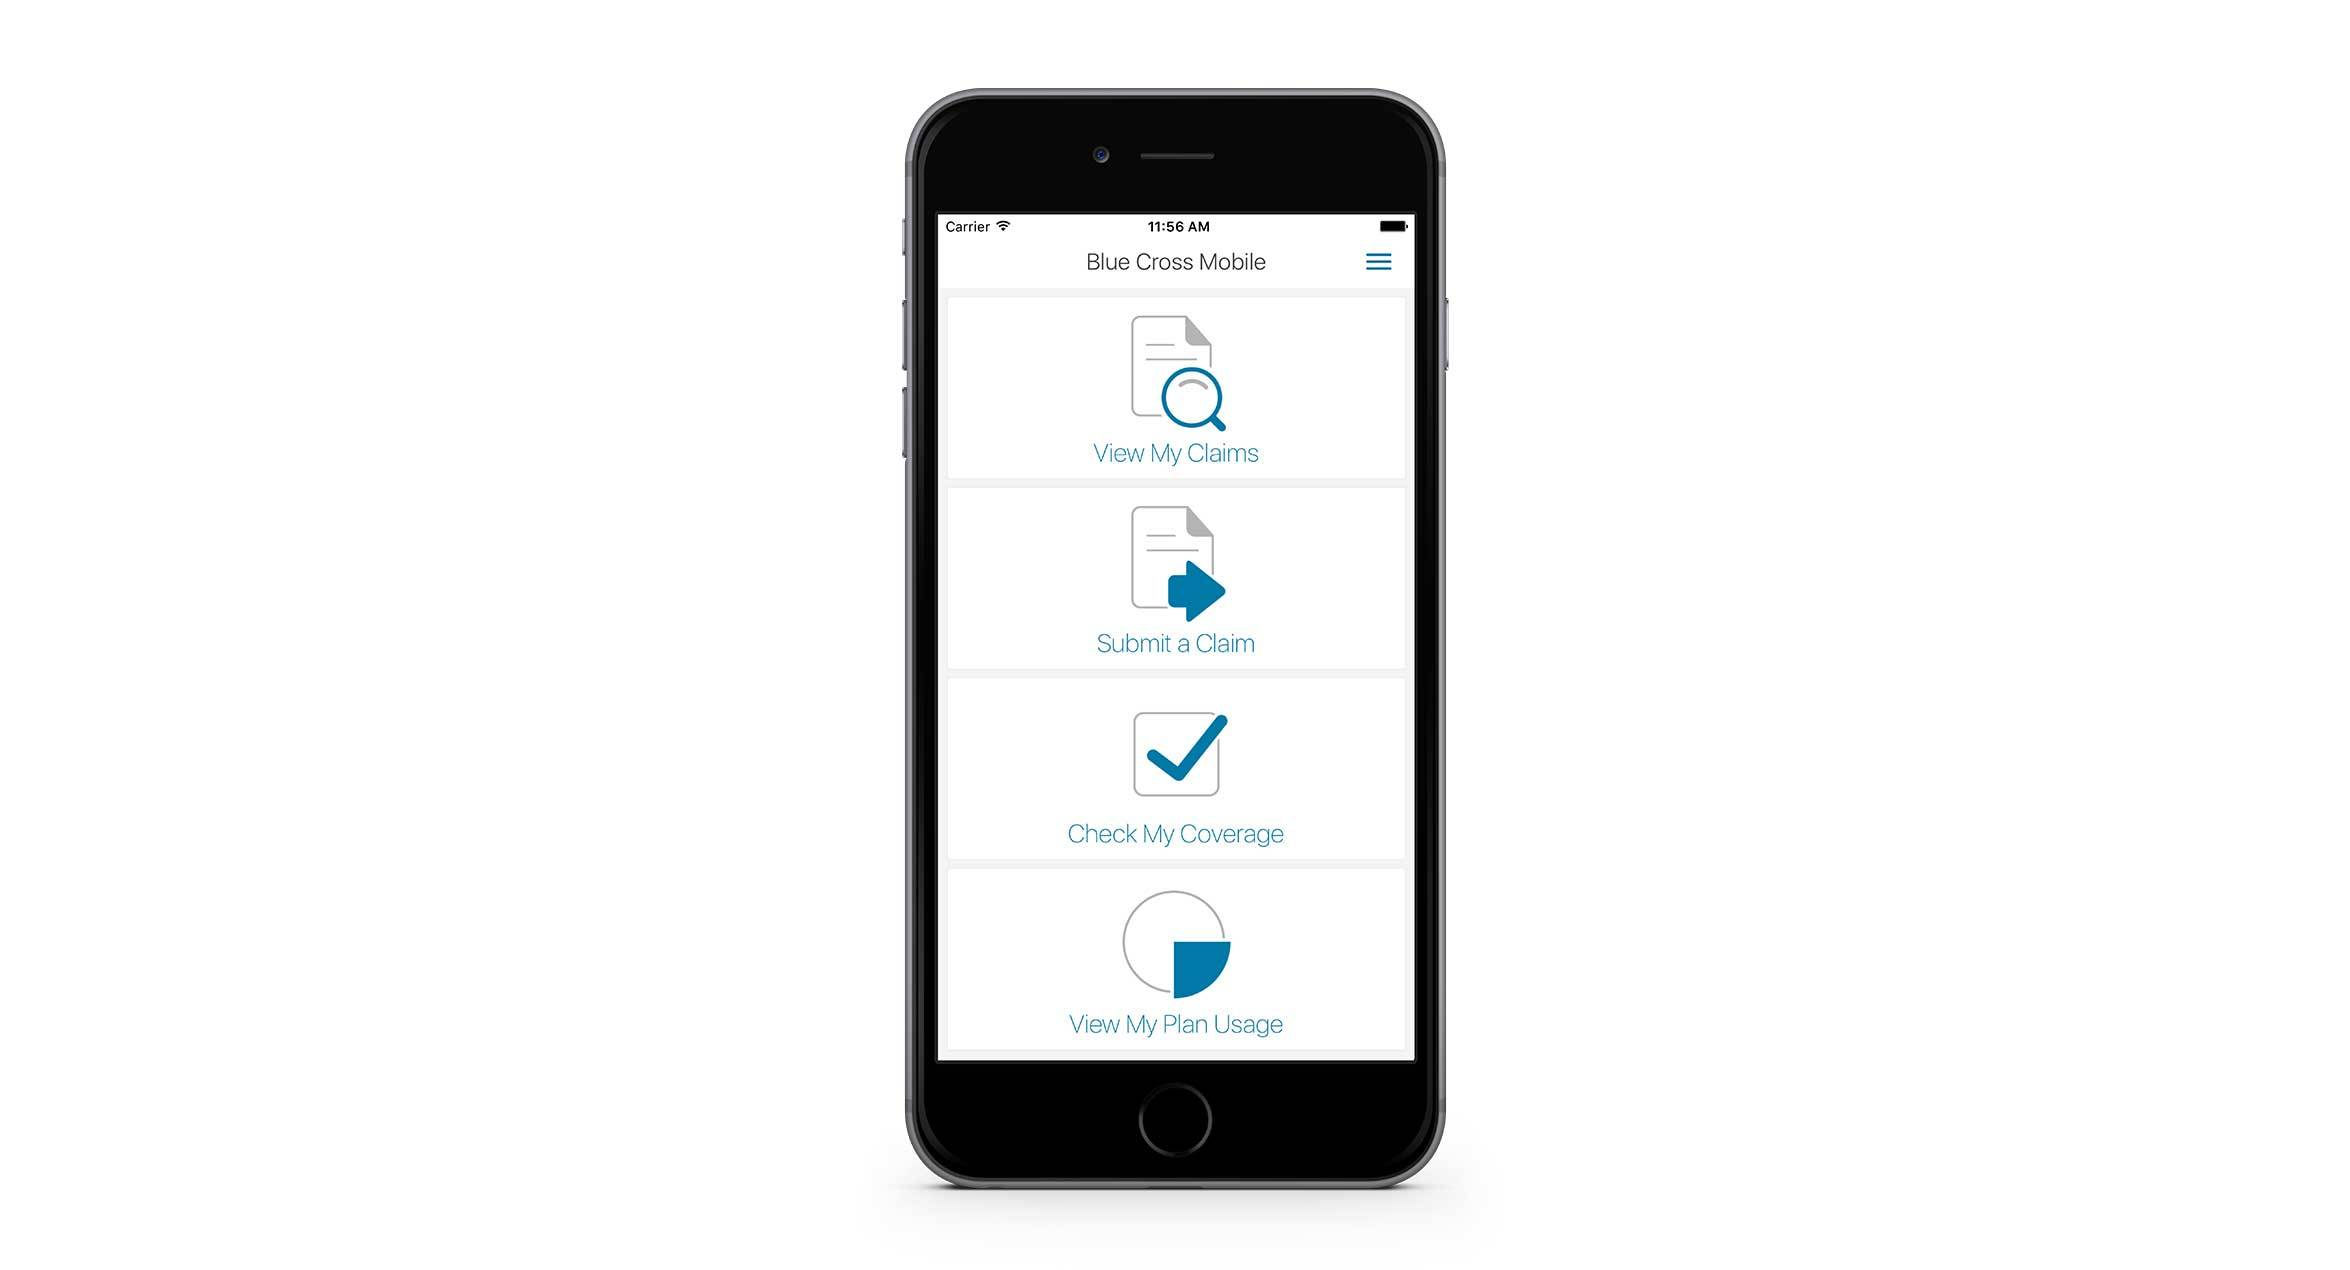 Mobile app showing main screen options: View My Claims, Submit a Claim, Check My Coverage and View My Plan Usage.